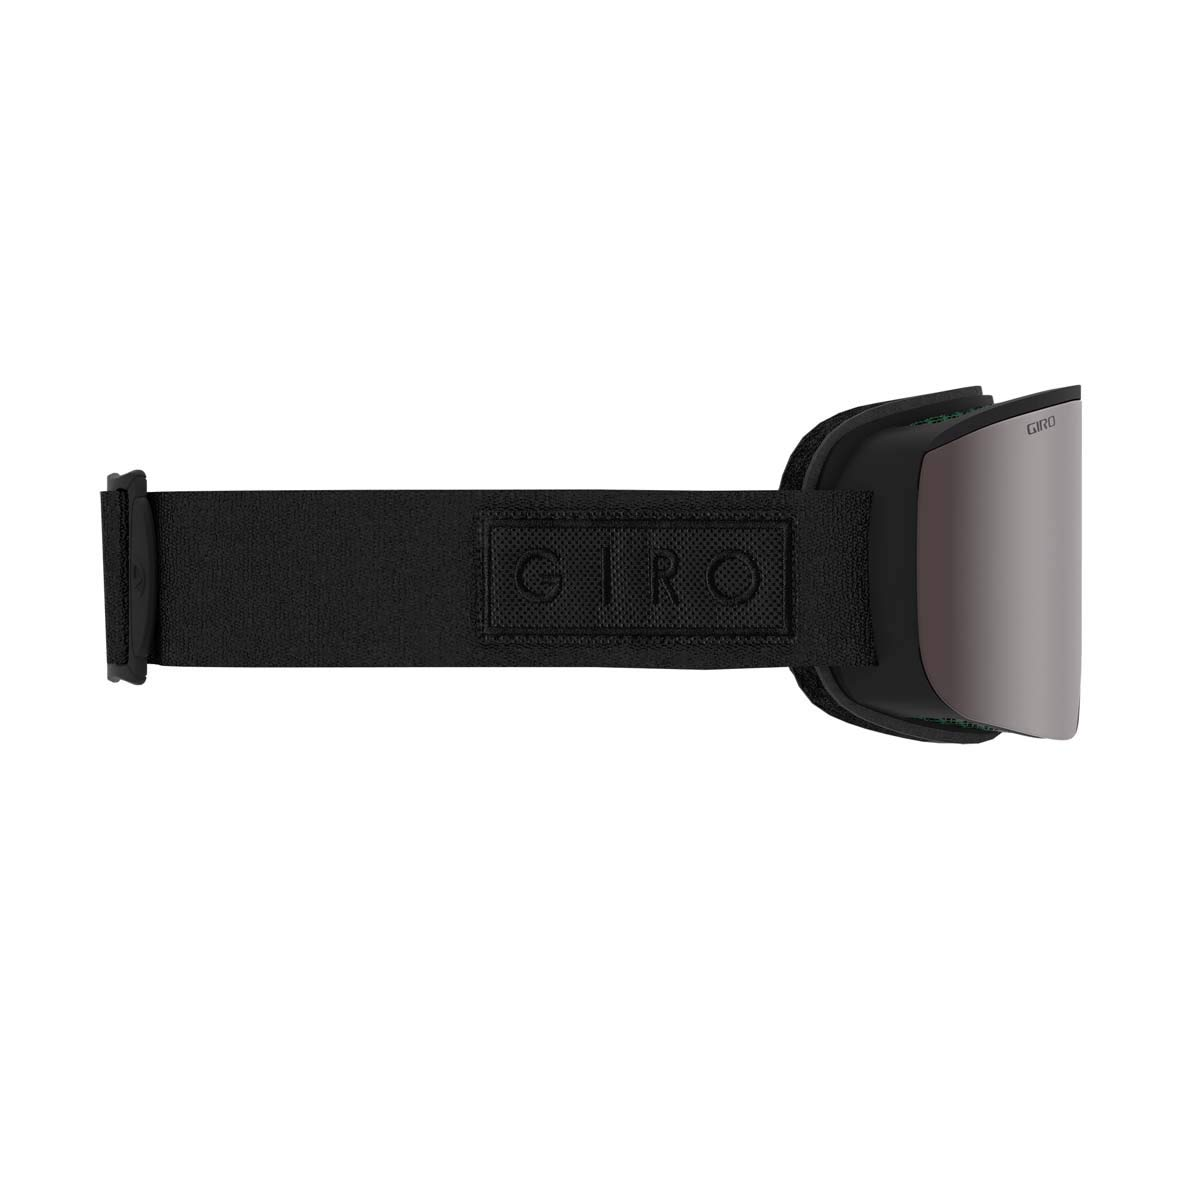 Giro Axis Asian Fit Snow Goggles with Vivid Lens Technology and Quick Change Lens System